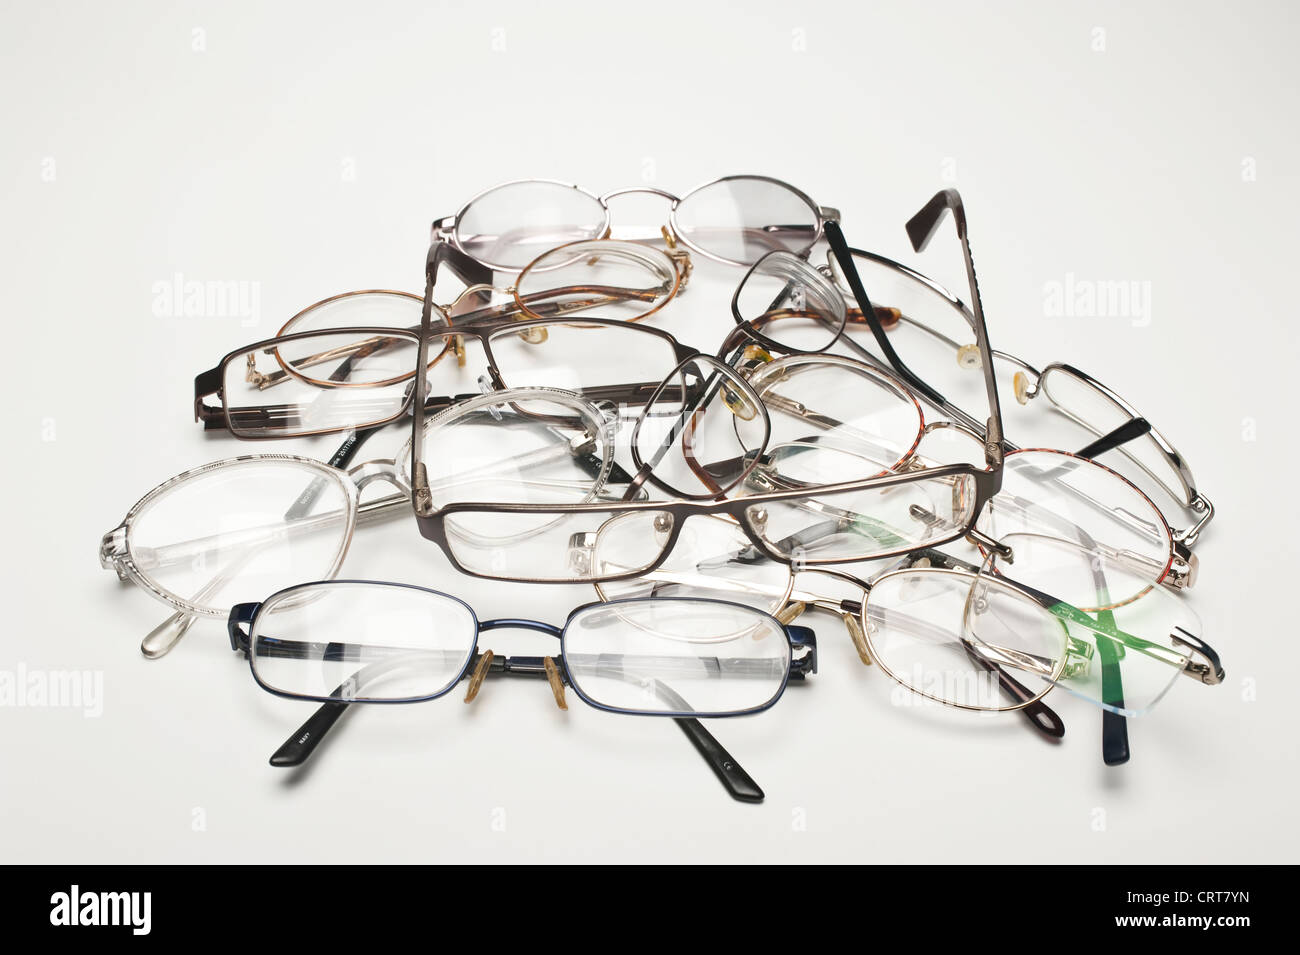 A large group of spectacles or glasses - Stock Image